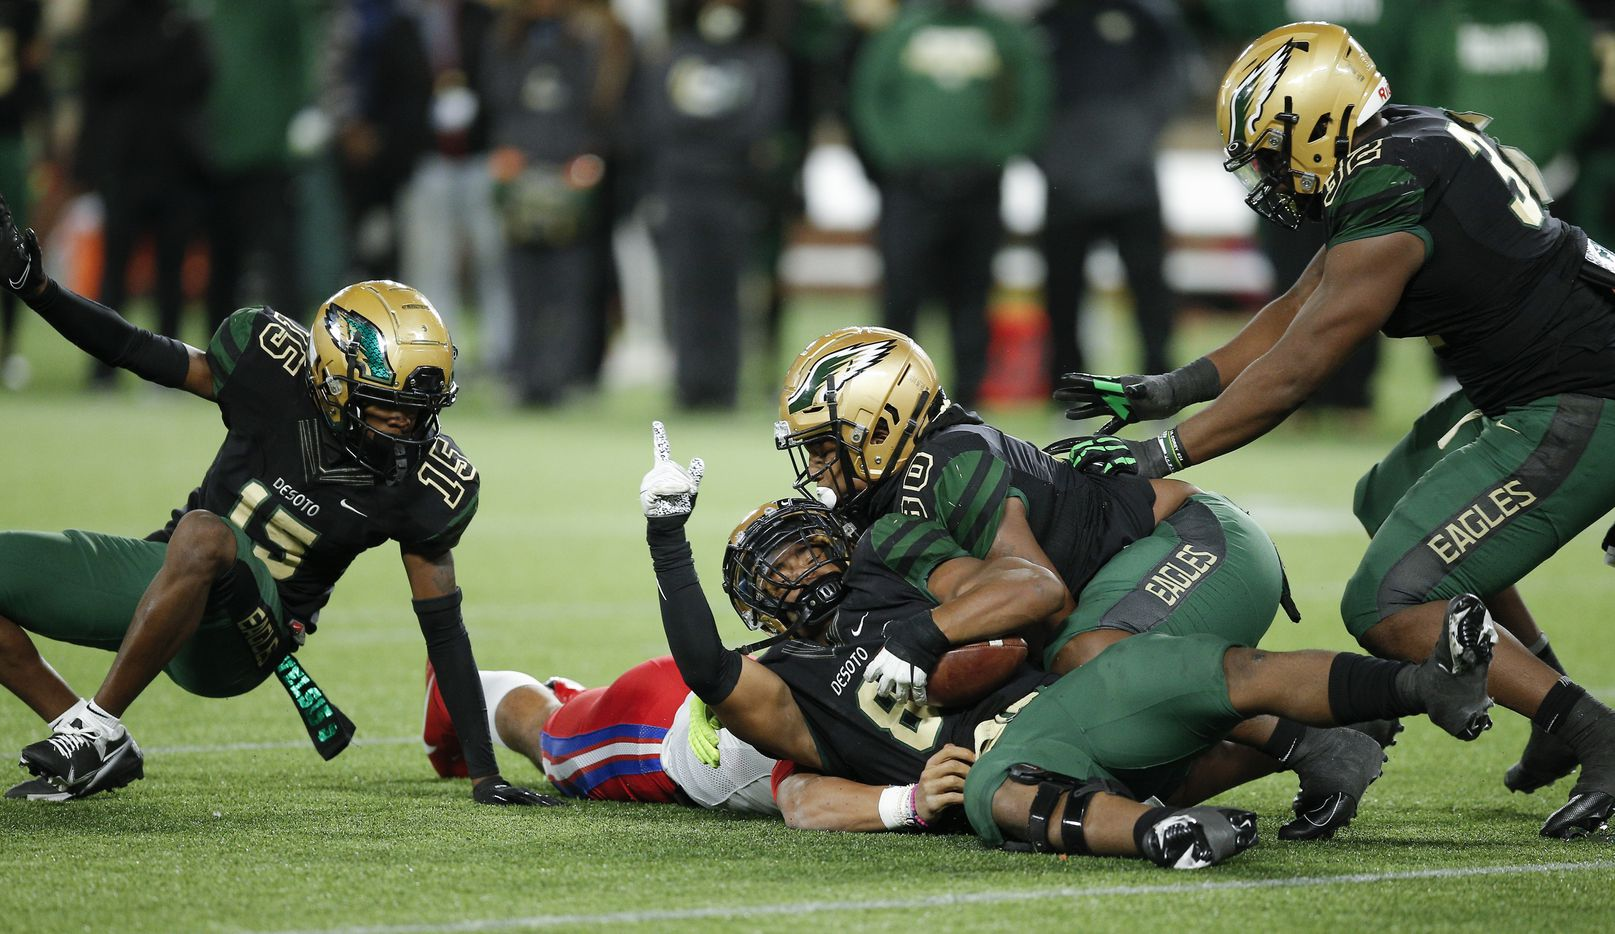 DeSoto linebacker D'verryon Foster (8) celebrates recovering a fumble by Duncanville senior quarterback Grayson James during the first half of a Class 6A Division I Region II final high school football game, Saturday, January 2, 2021.  Duncanville won 56-28. (Brandon Wade/Special Contributor)